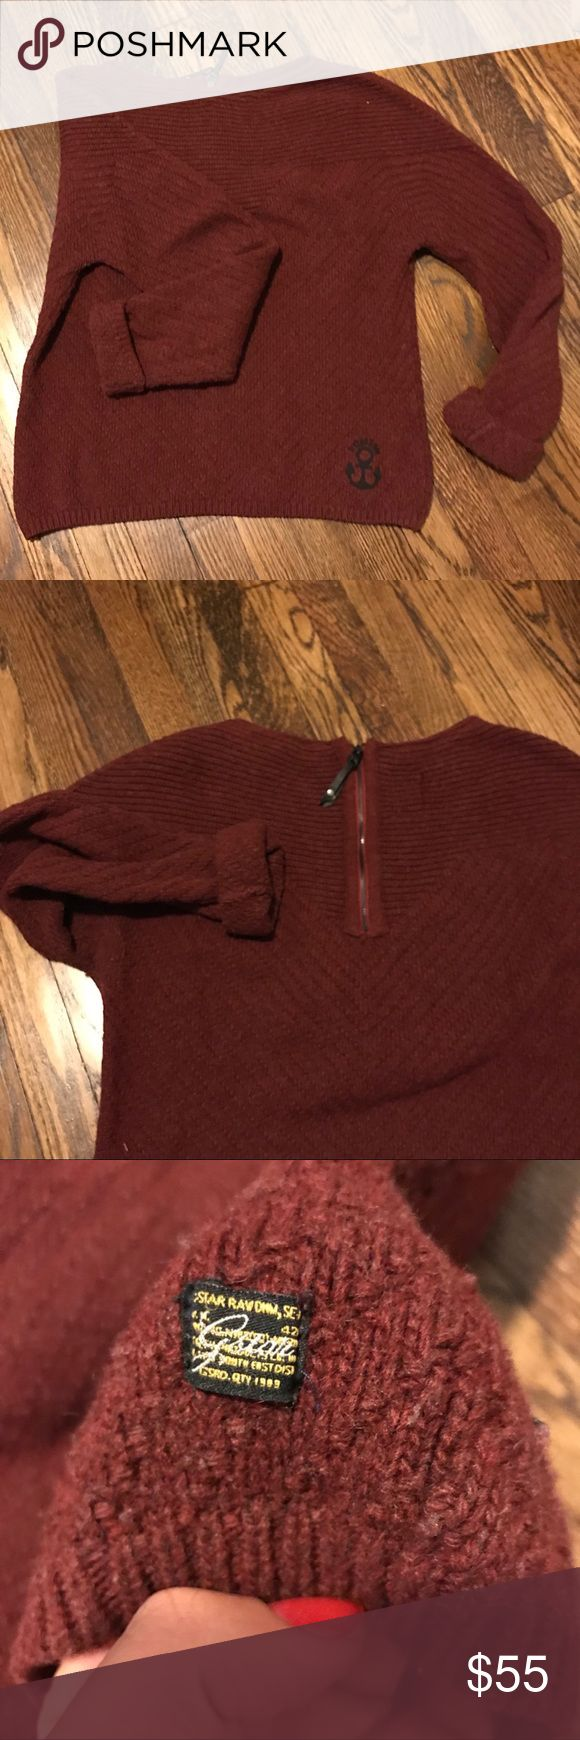 G-star Raw Knitted Sweater Burgundy Sz L This top has only been used a few times so it's in excellent condition. Super warm and cozy. Feminine fit. Has a zipper in the back, mostly for show.  I've cut the tag unfortunately but I think it's a wool mix. Does not itch. G-Star Sweaters Crew & Scoop Necks